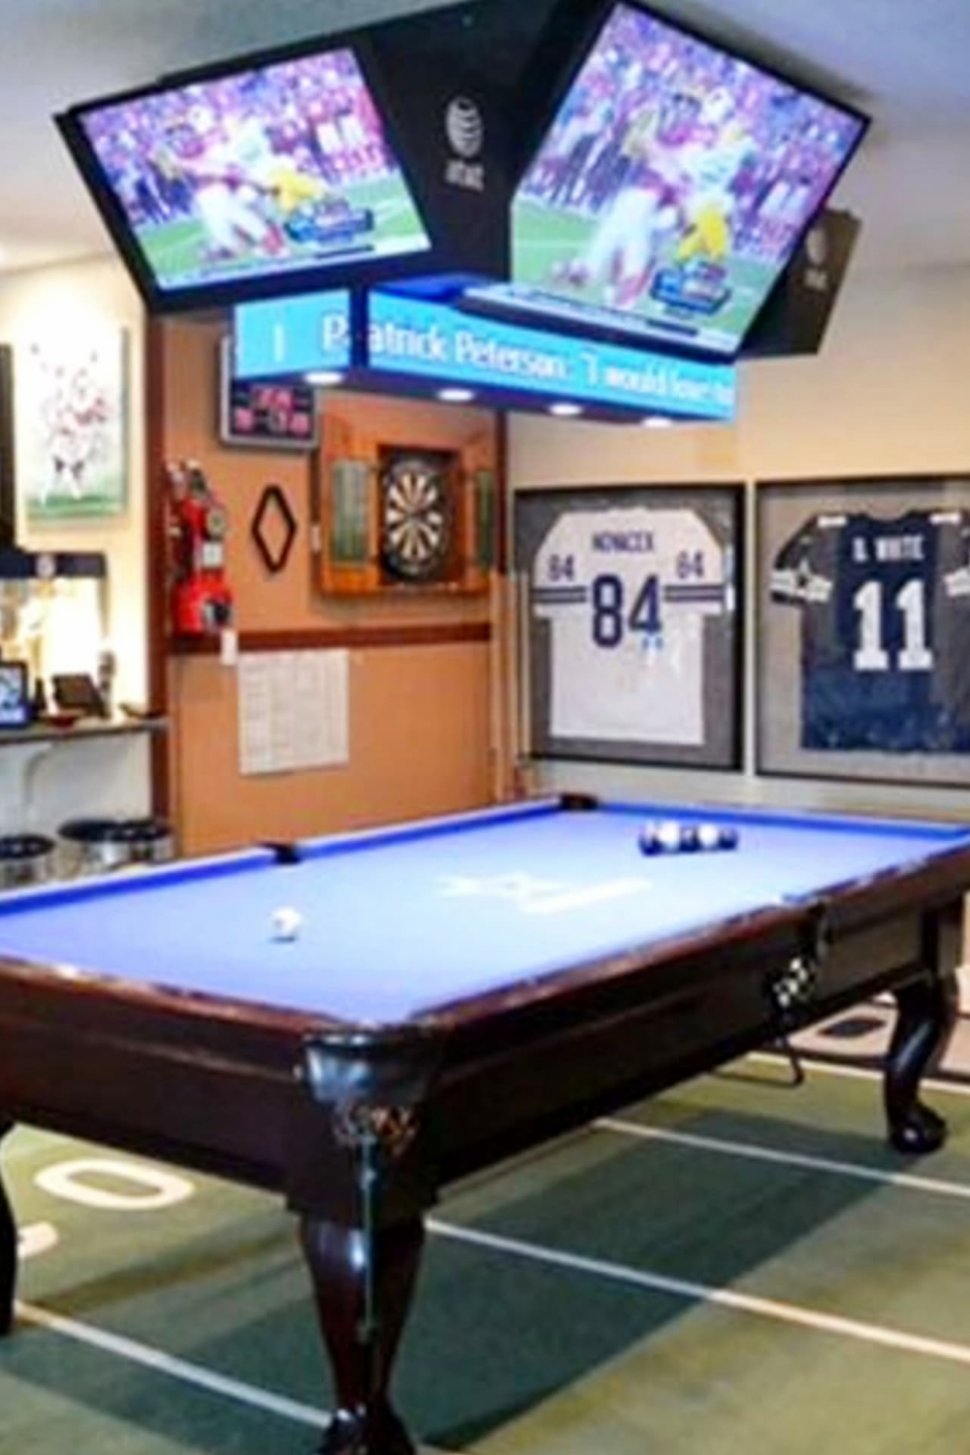 Man Cave Ideas - Garage Man Cave Ideas on a Budget | Man cave ..